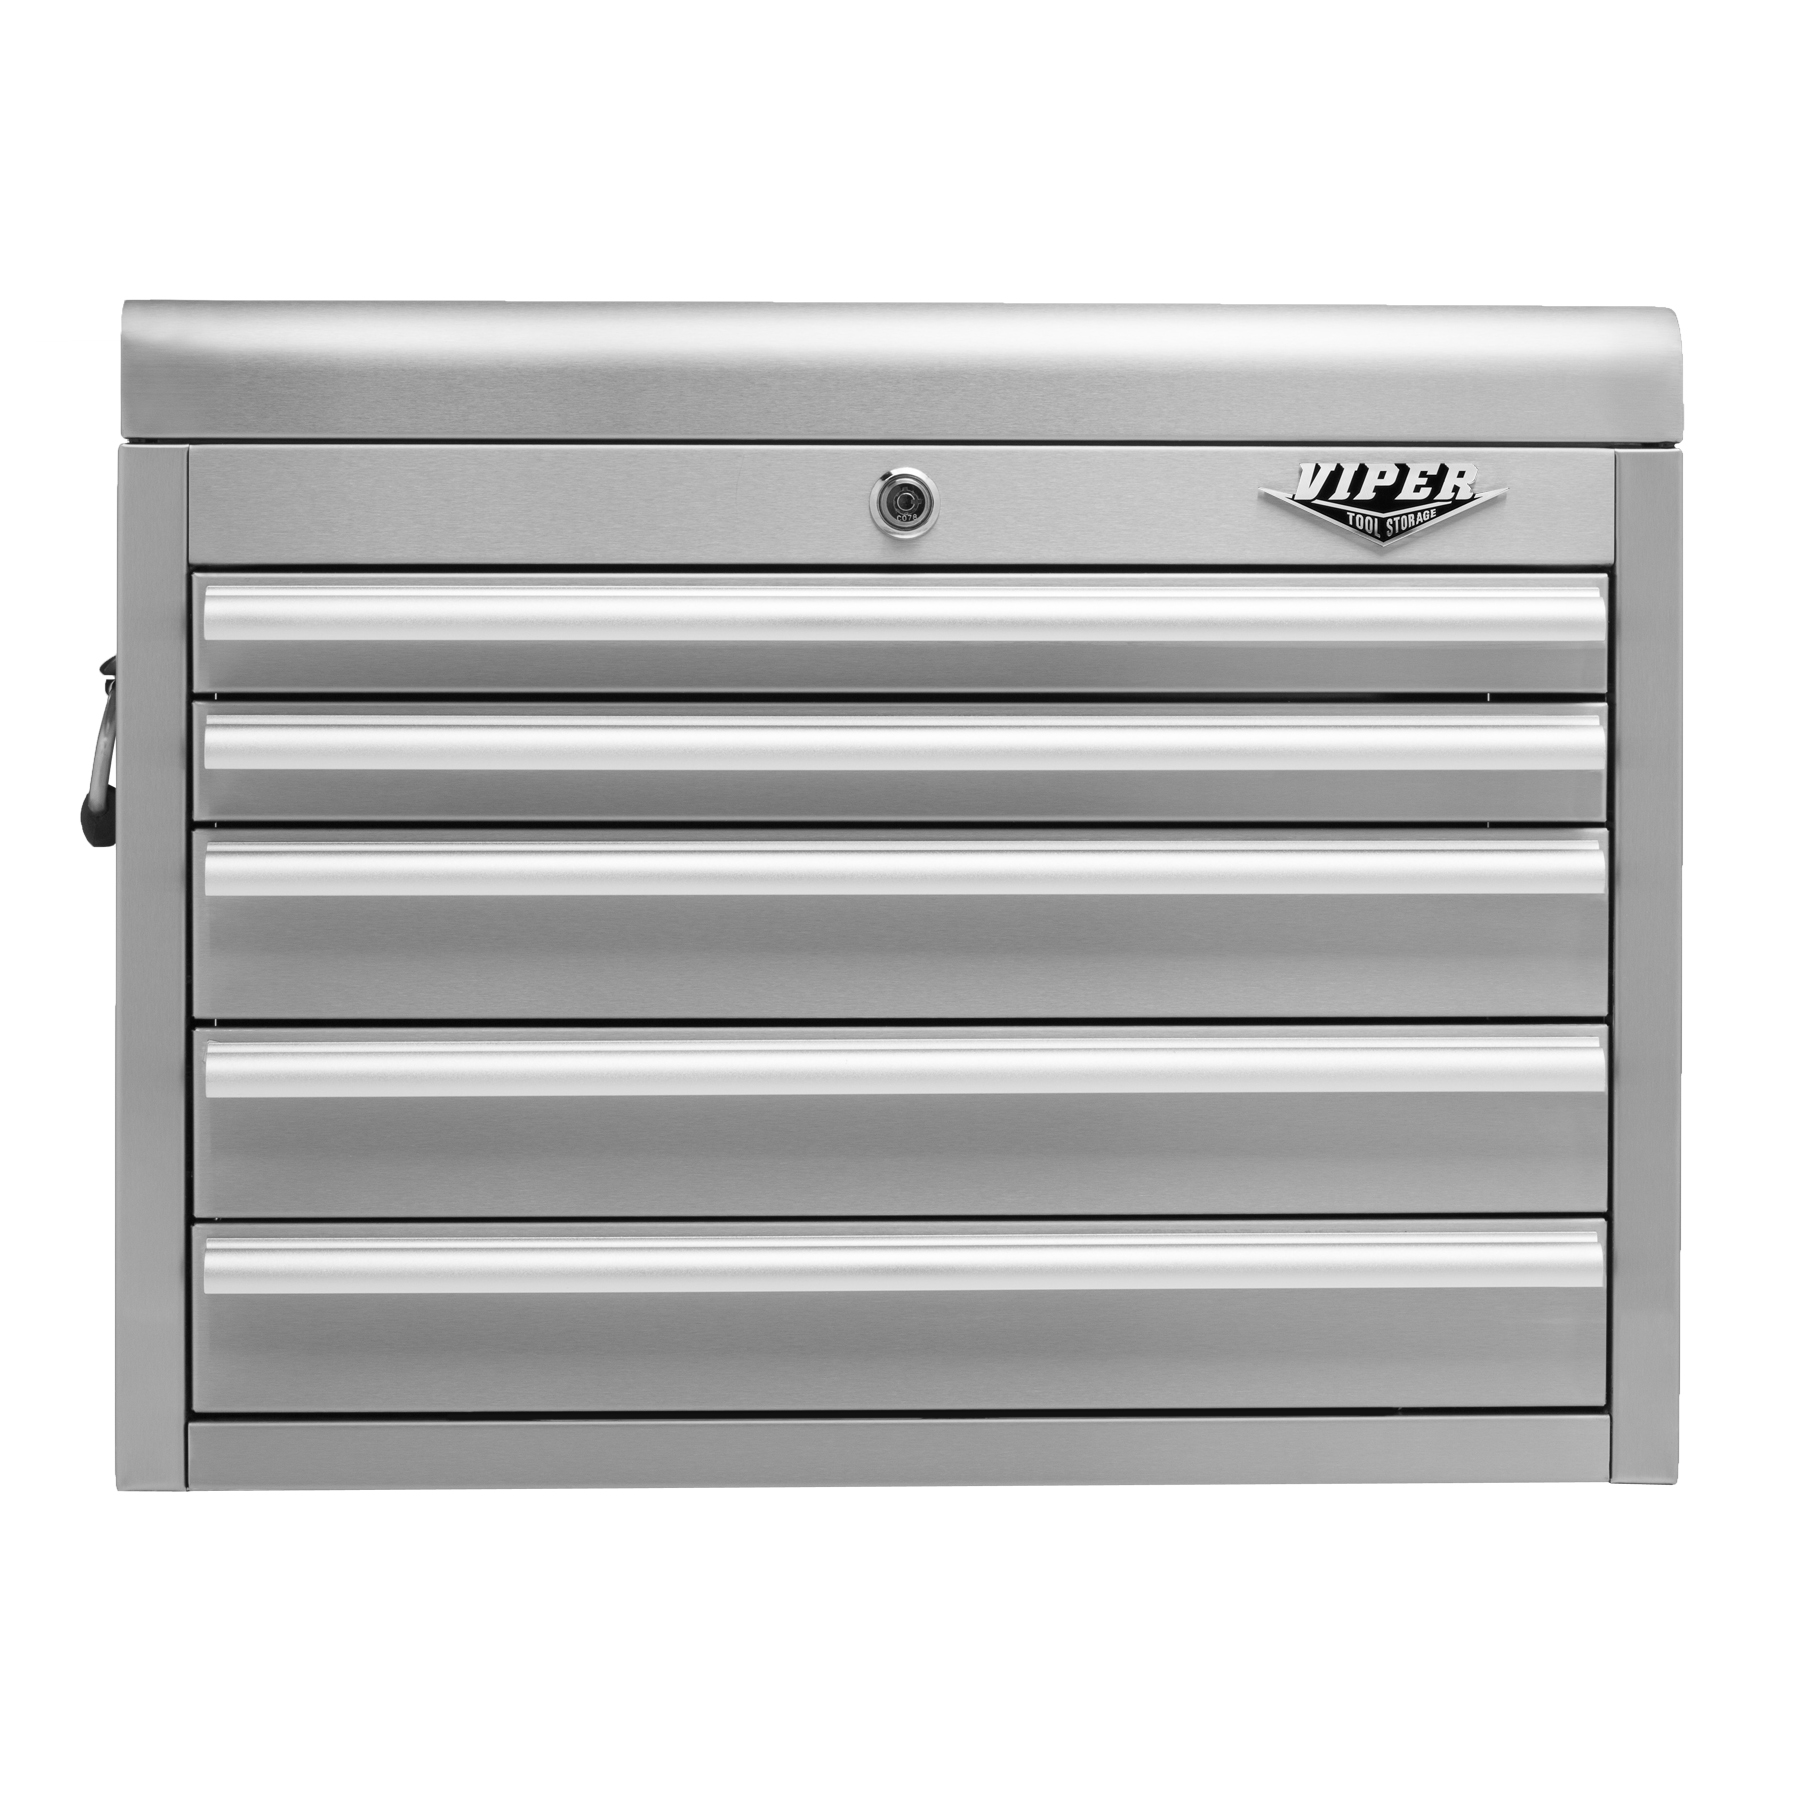 Viper Tool Storage 26-inch 5 Drawer 304 Stainless Steel Top Chest